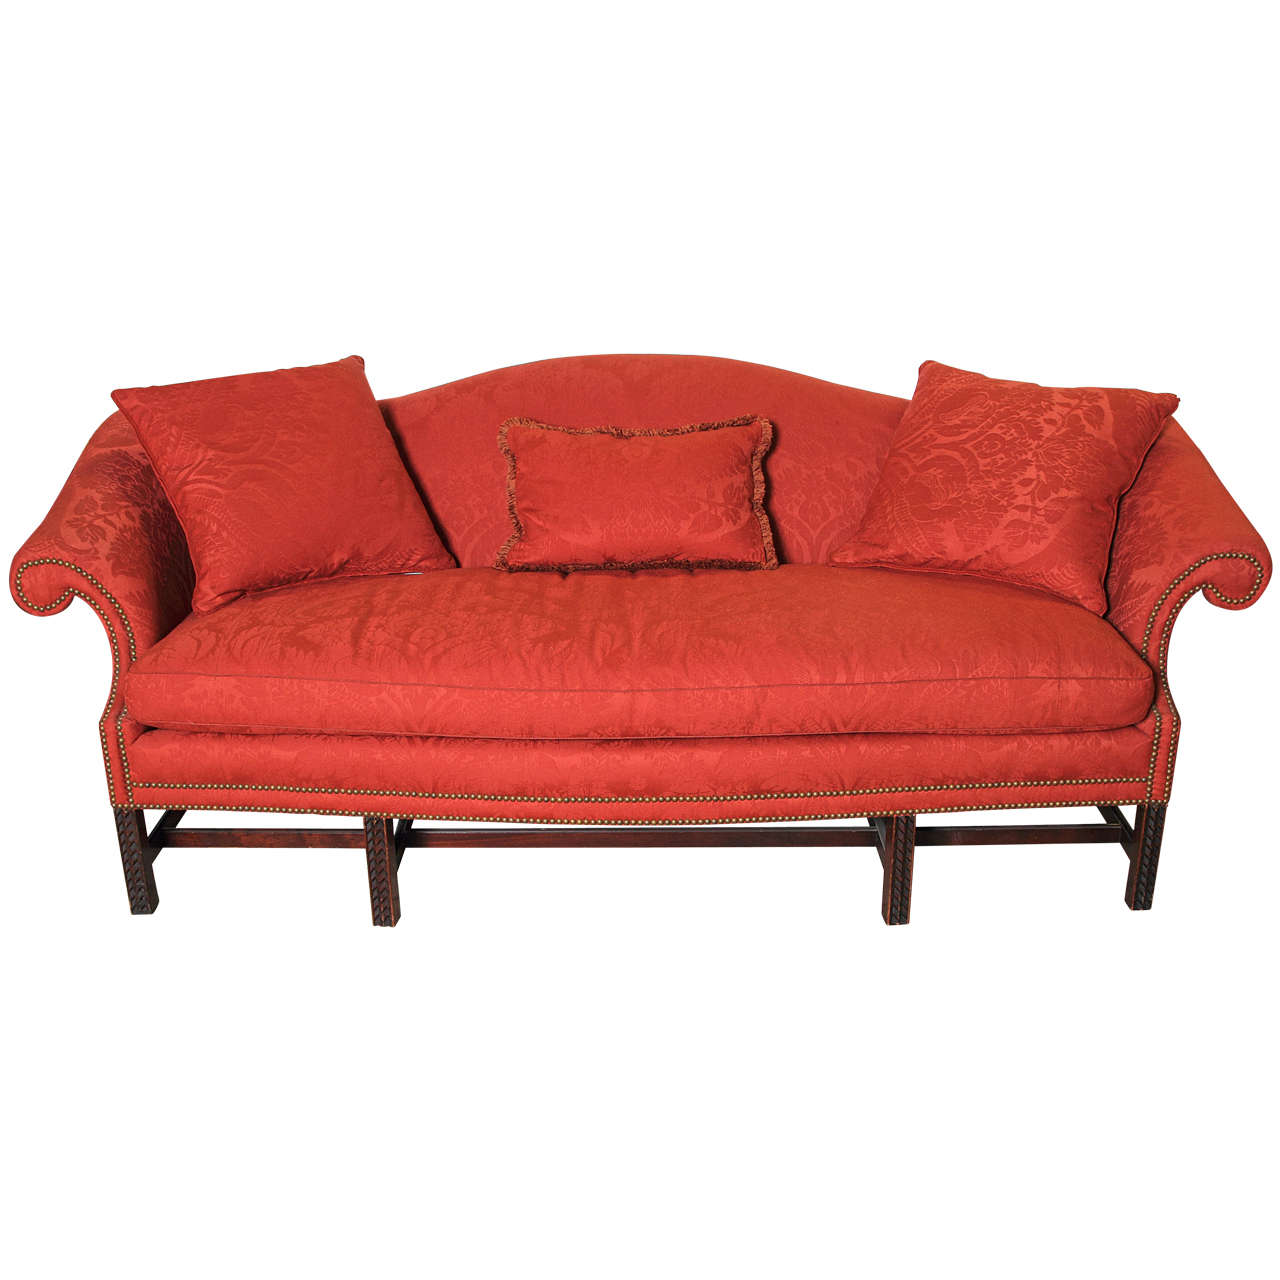 English Chippendale Style Camel Back Sofa For Sale At 1stdibs